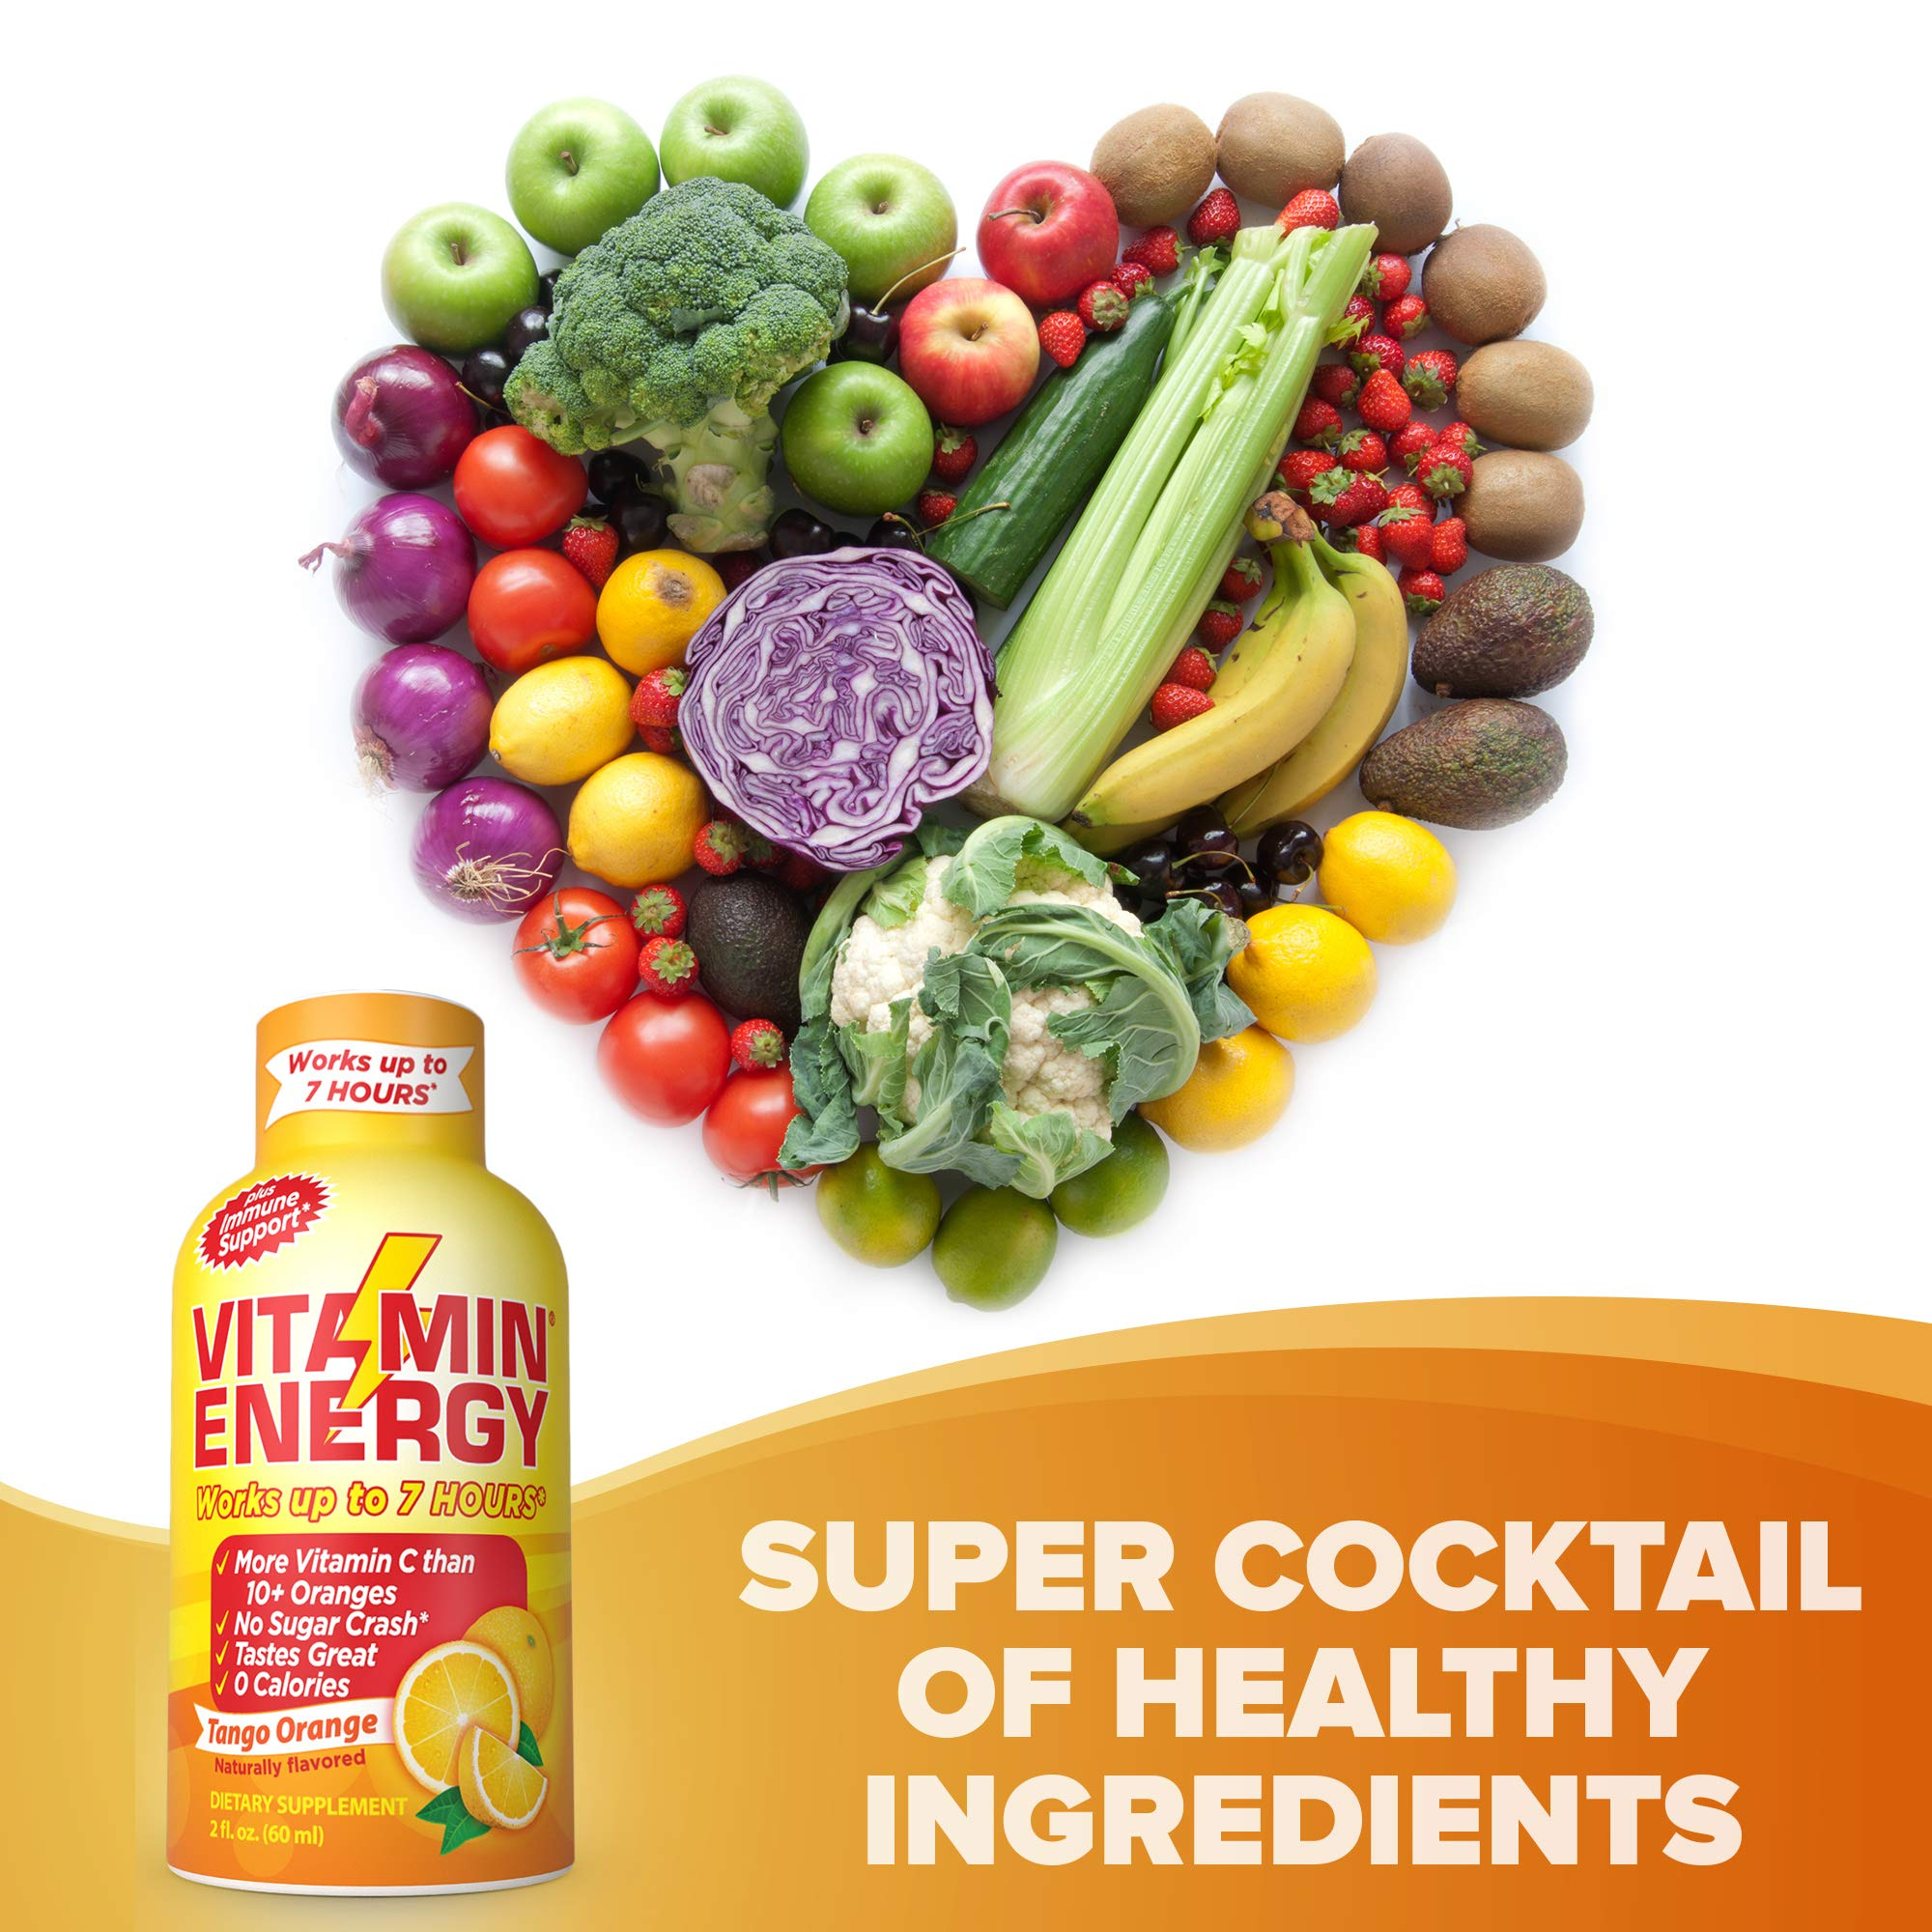 Vitamin Energy Shots – up to 7 Hours of Energy, More Vitamin C Than 10 Oranges, 0 Calories (48 Count) by Vitamin Energy (Image #5)